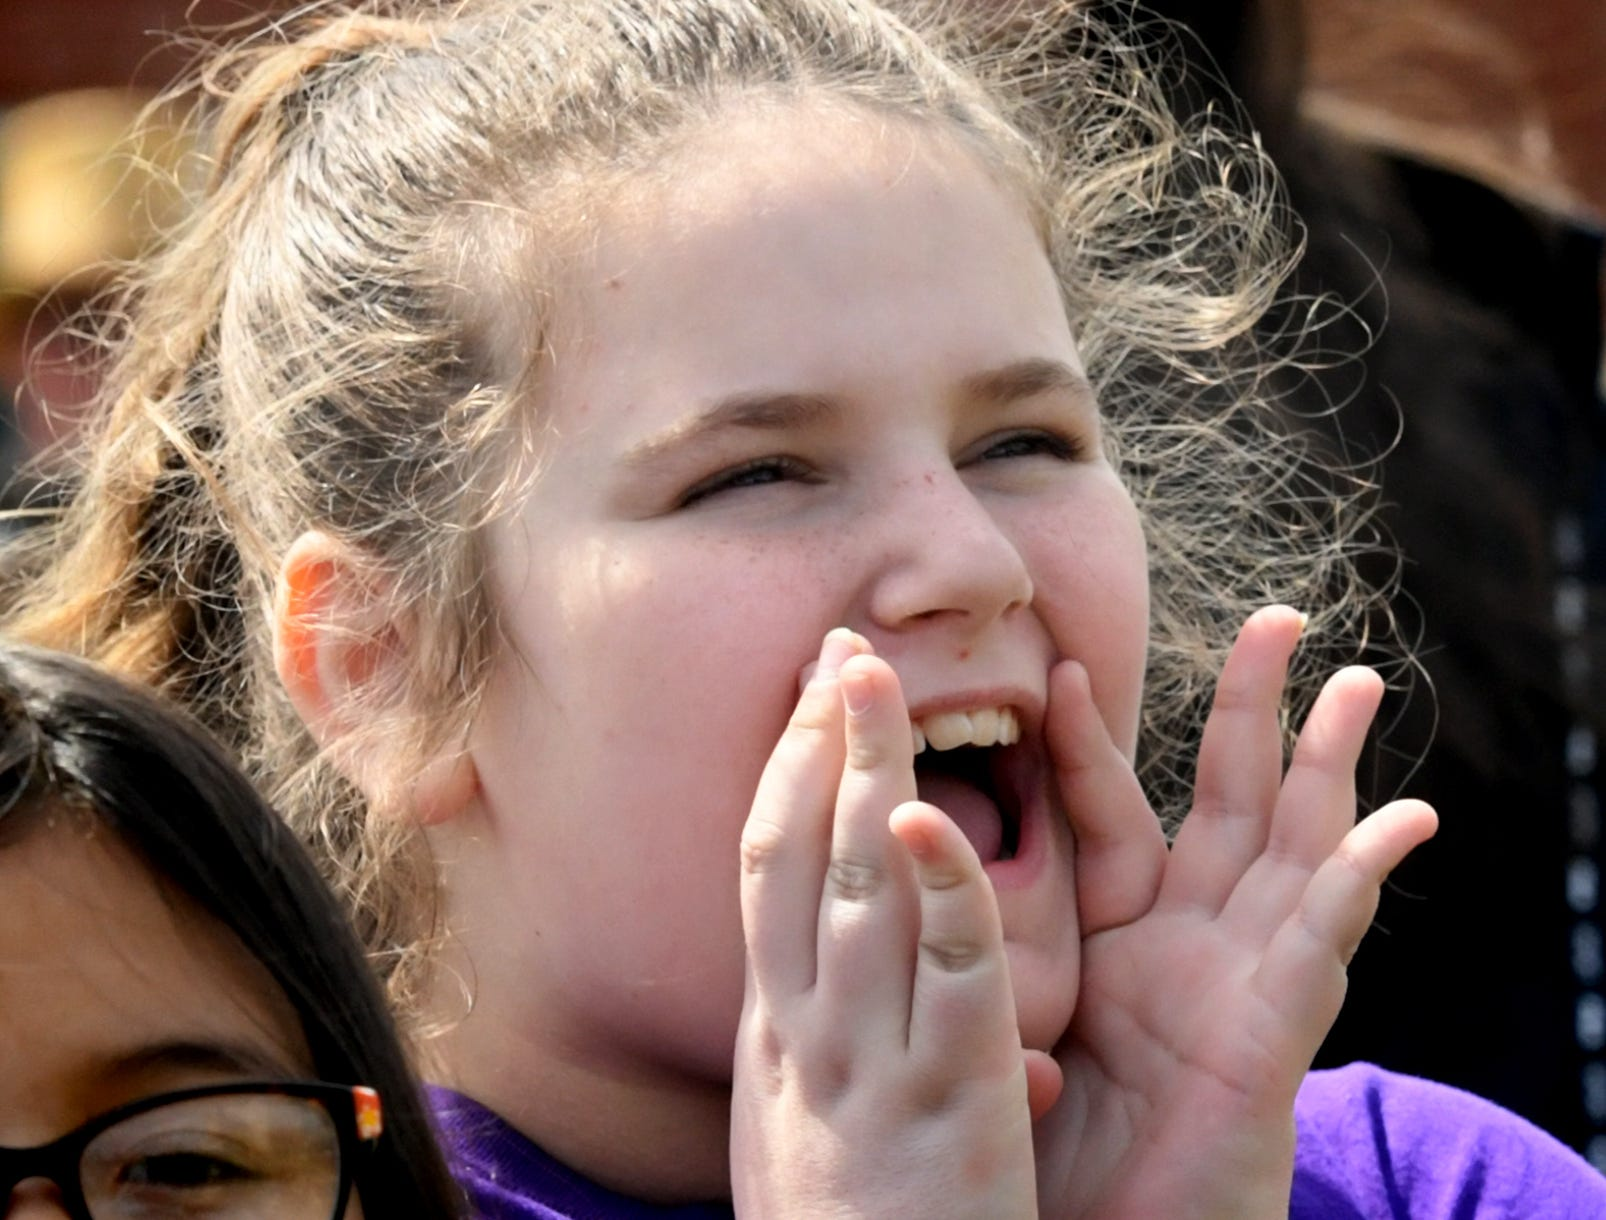 Spring Grove Elementary fourth grader Keiara Yohe participates in a demonstration during the district's 6th Annual Rollin' Tractor Show Thursday, April 11, 2019, presented by the Future Farmers Club. Alumni and area residents brought farm equipment to display with the goal of acquainting students with the agriculture industry. The show, which included a parade of equipment, visited the intermediate and elementary schools. Bill Kalina photo